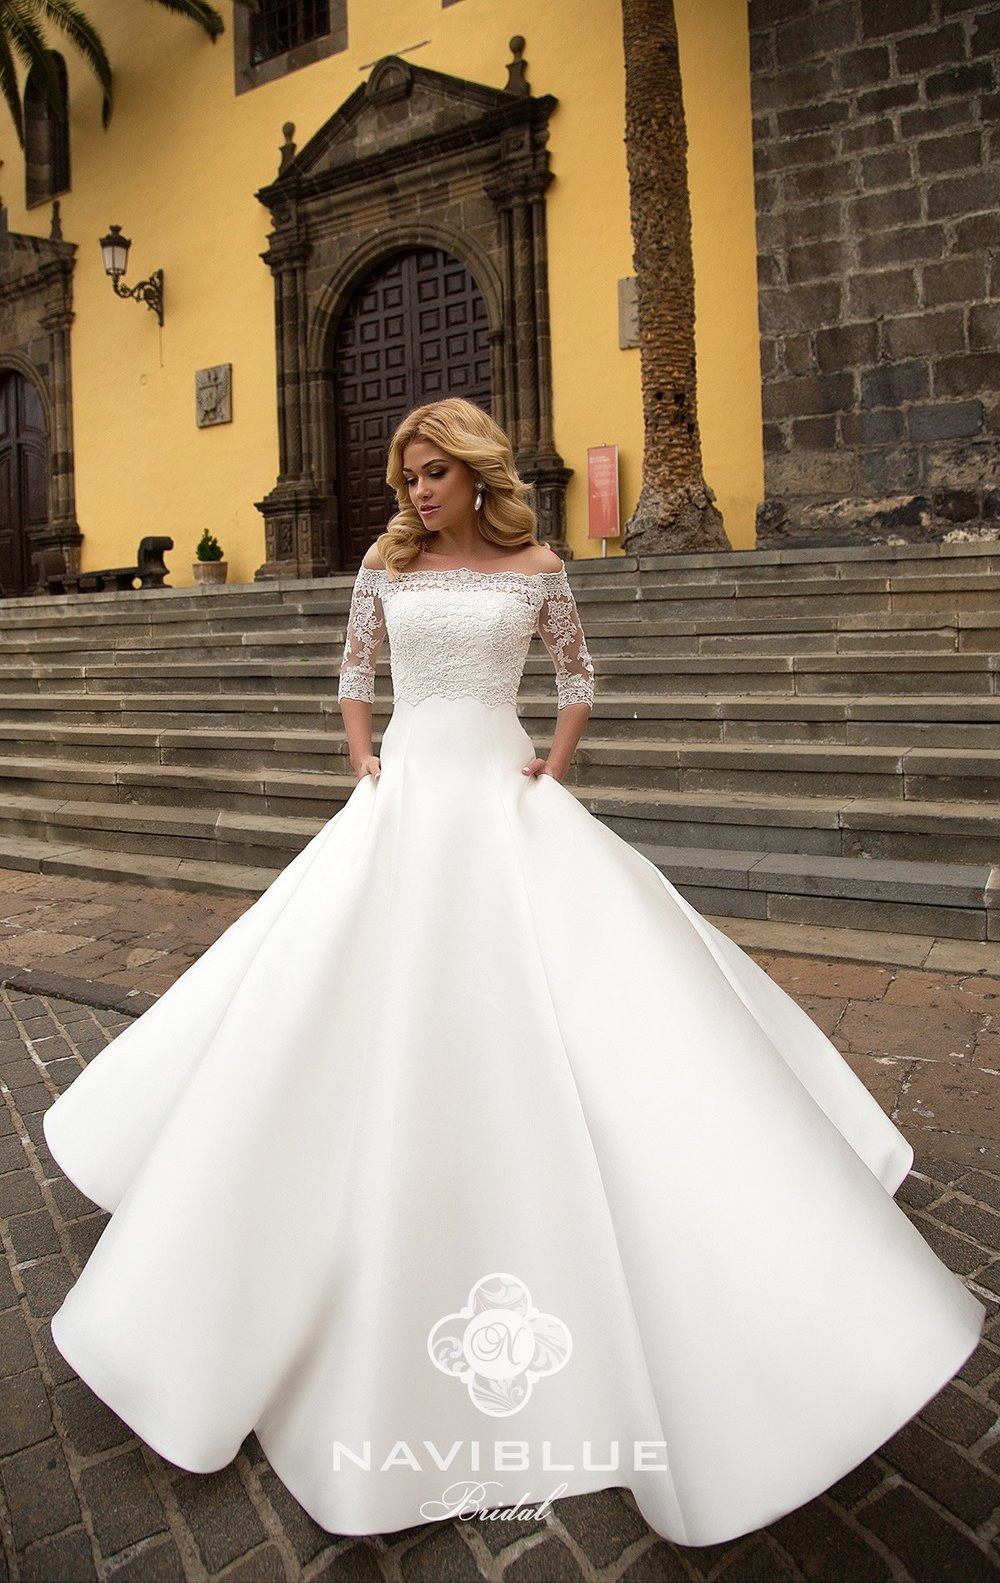 full_LEONA-16499_1 valentinos bridal ohio_.jpg